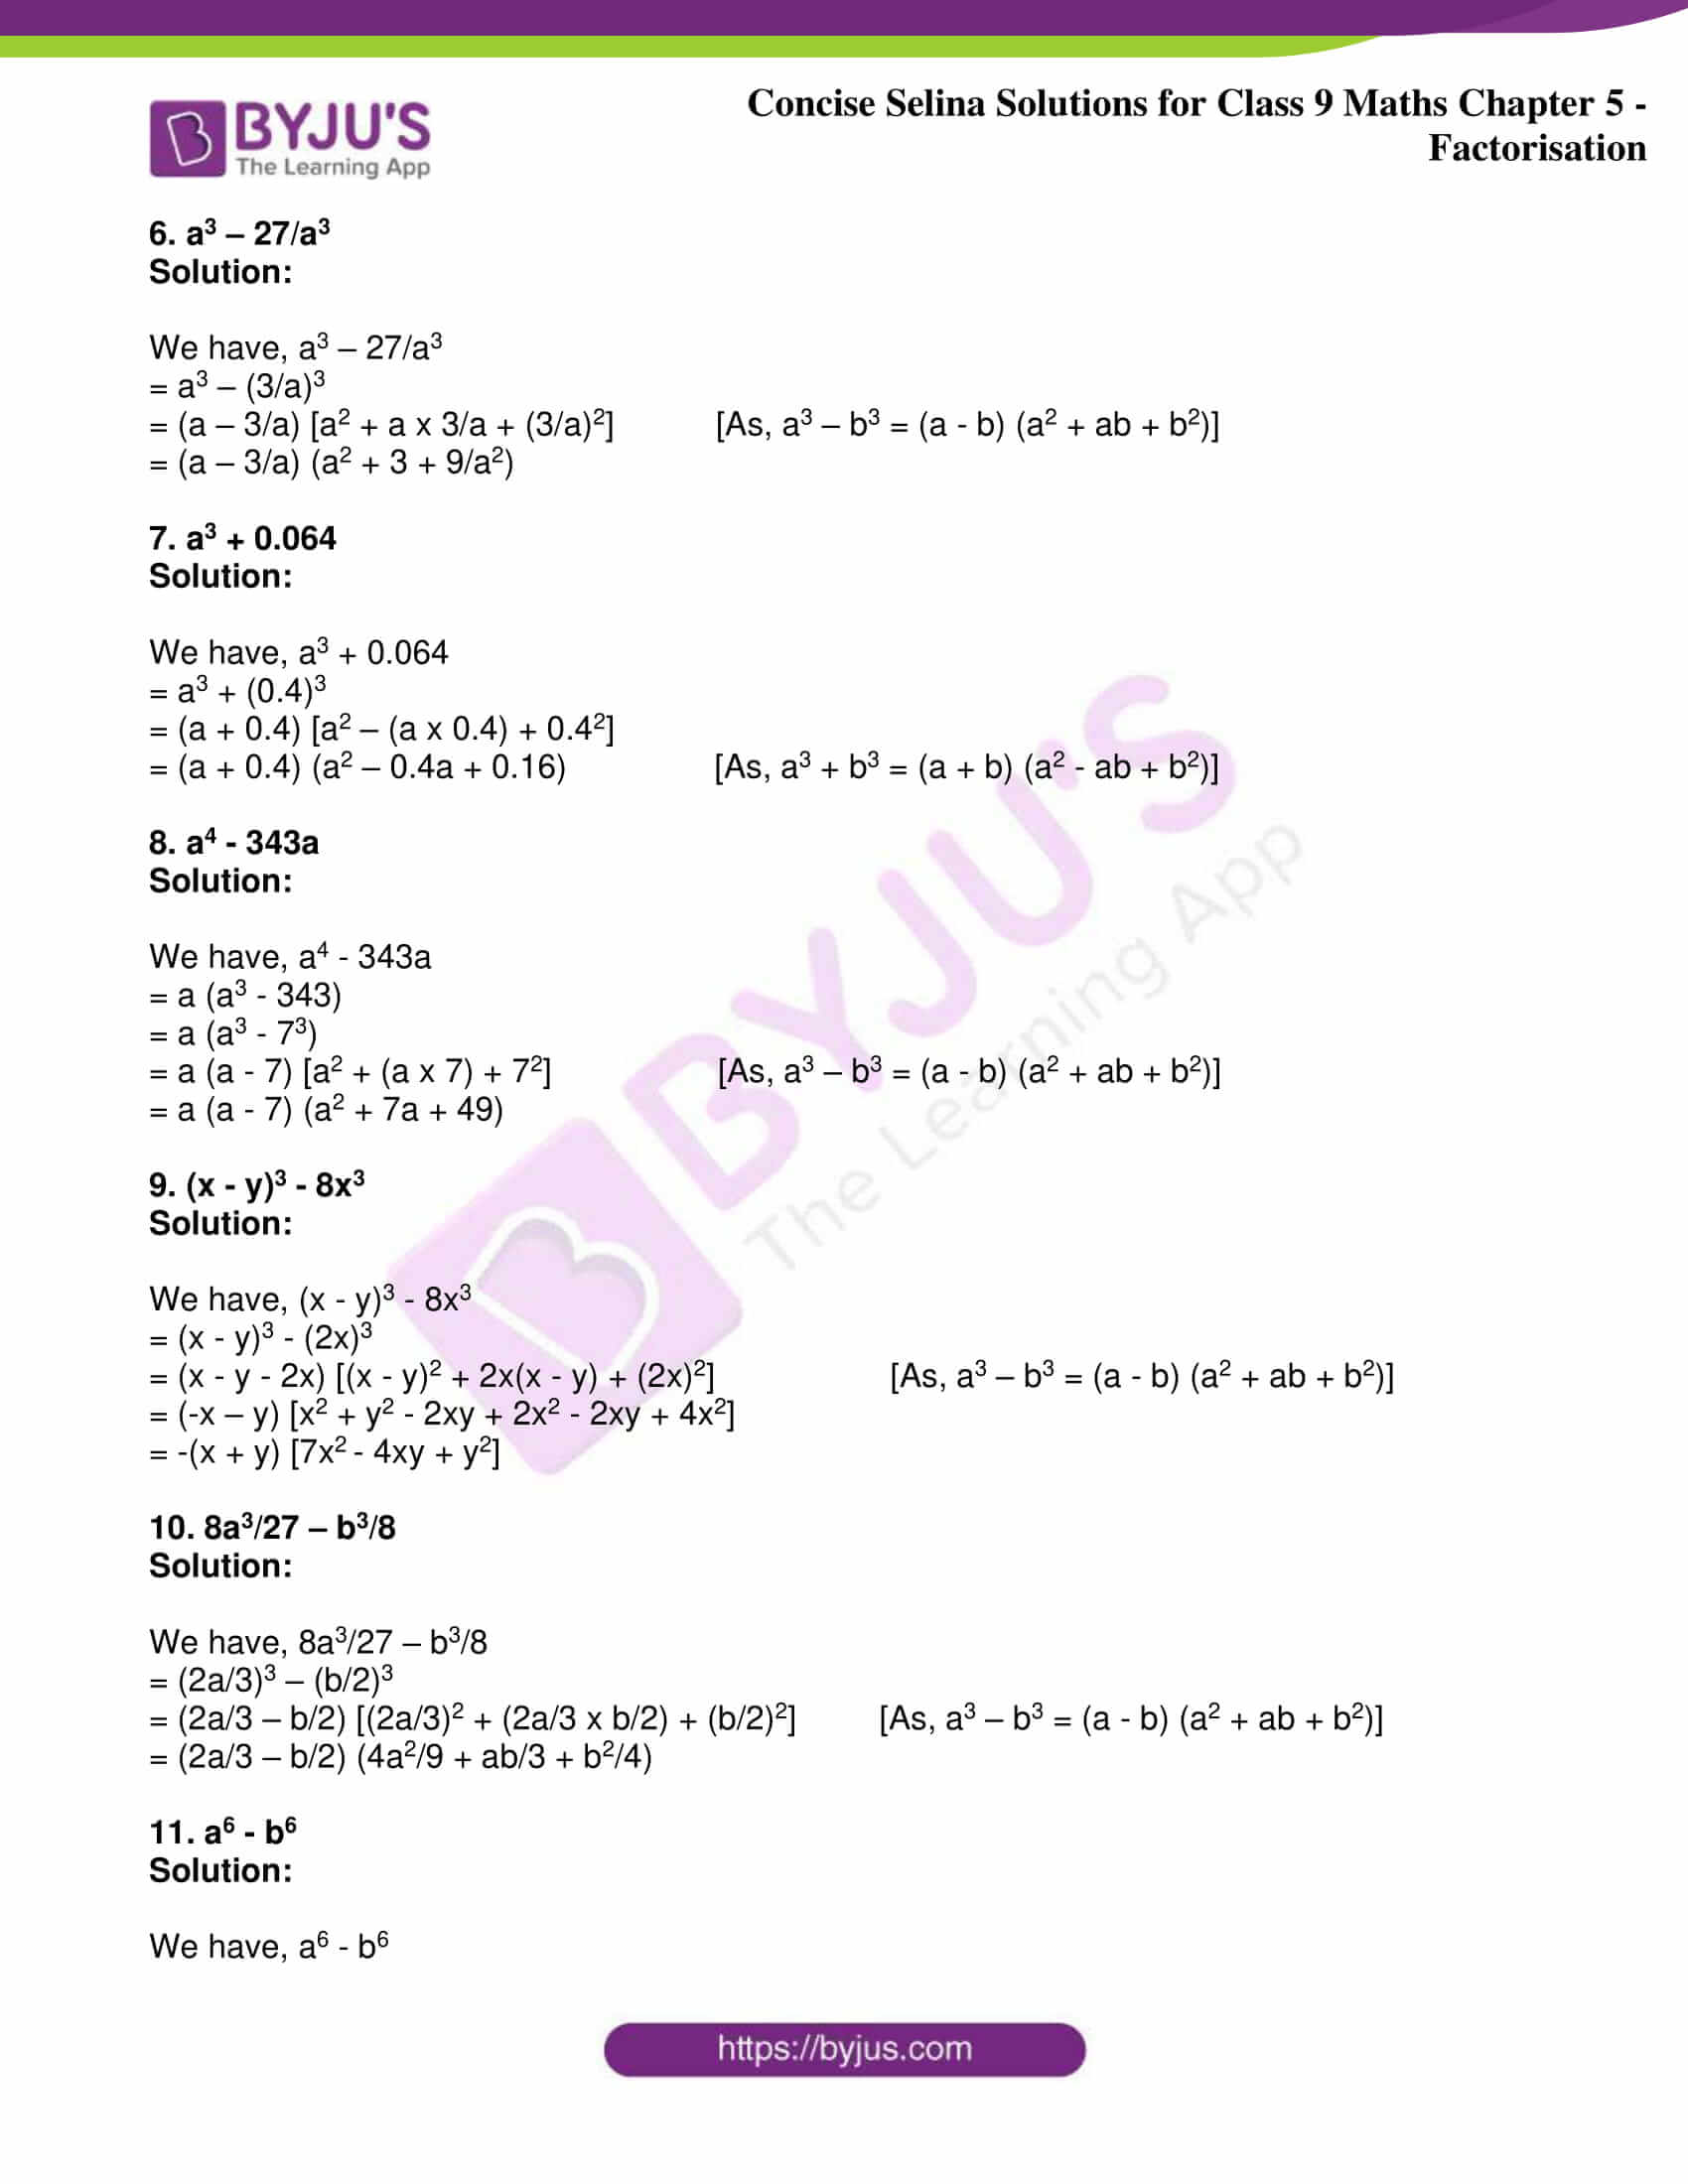 icse class 9 maths may10 selina solutions chapter 5 factorisation 21